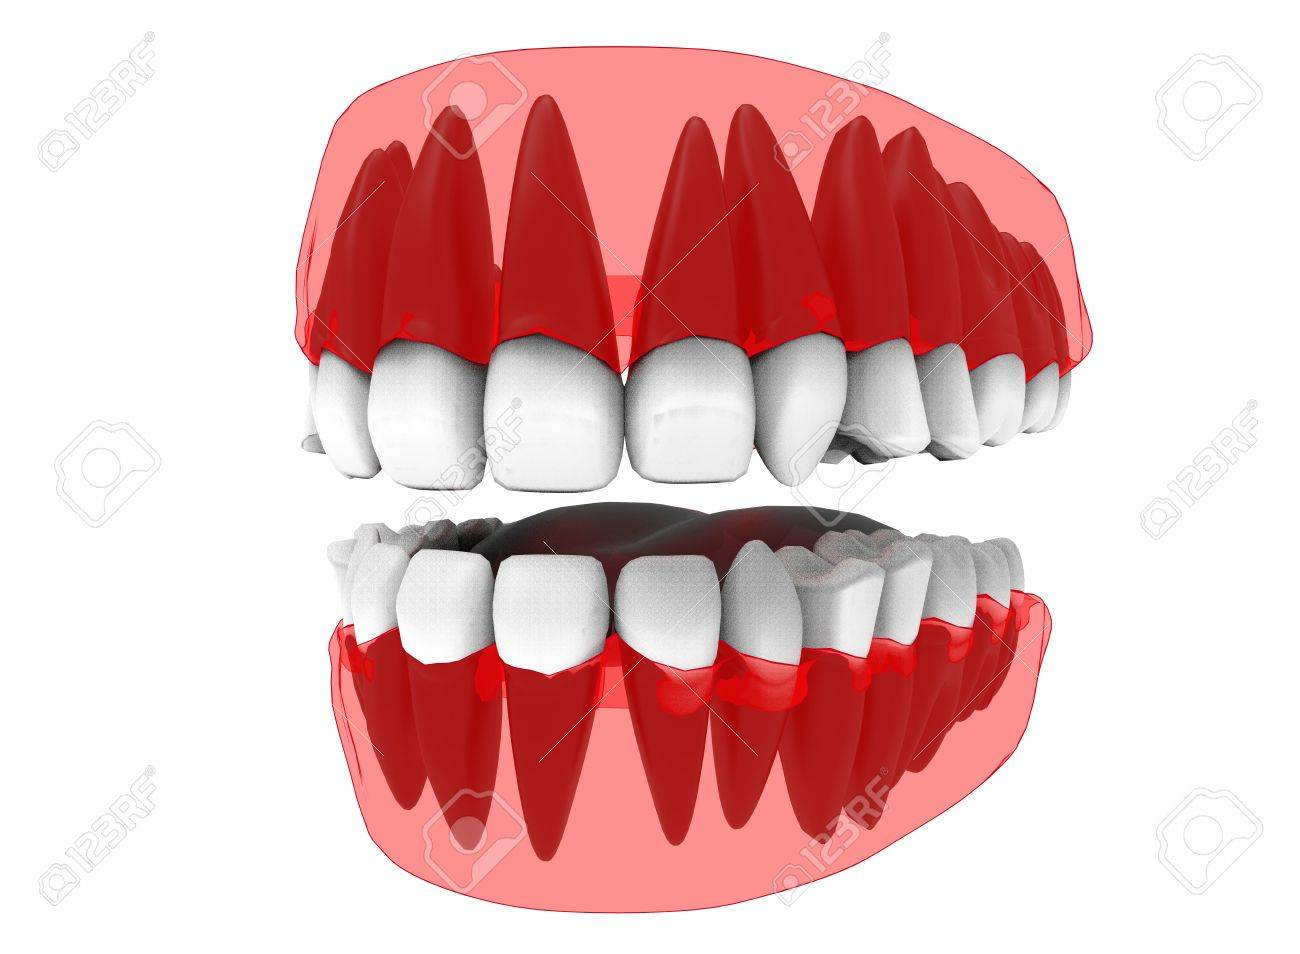 3d Illustration Of Closed Gum With Teeth And Tongue Icon For